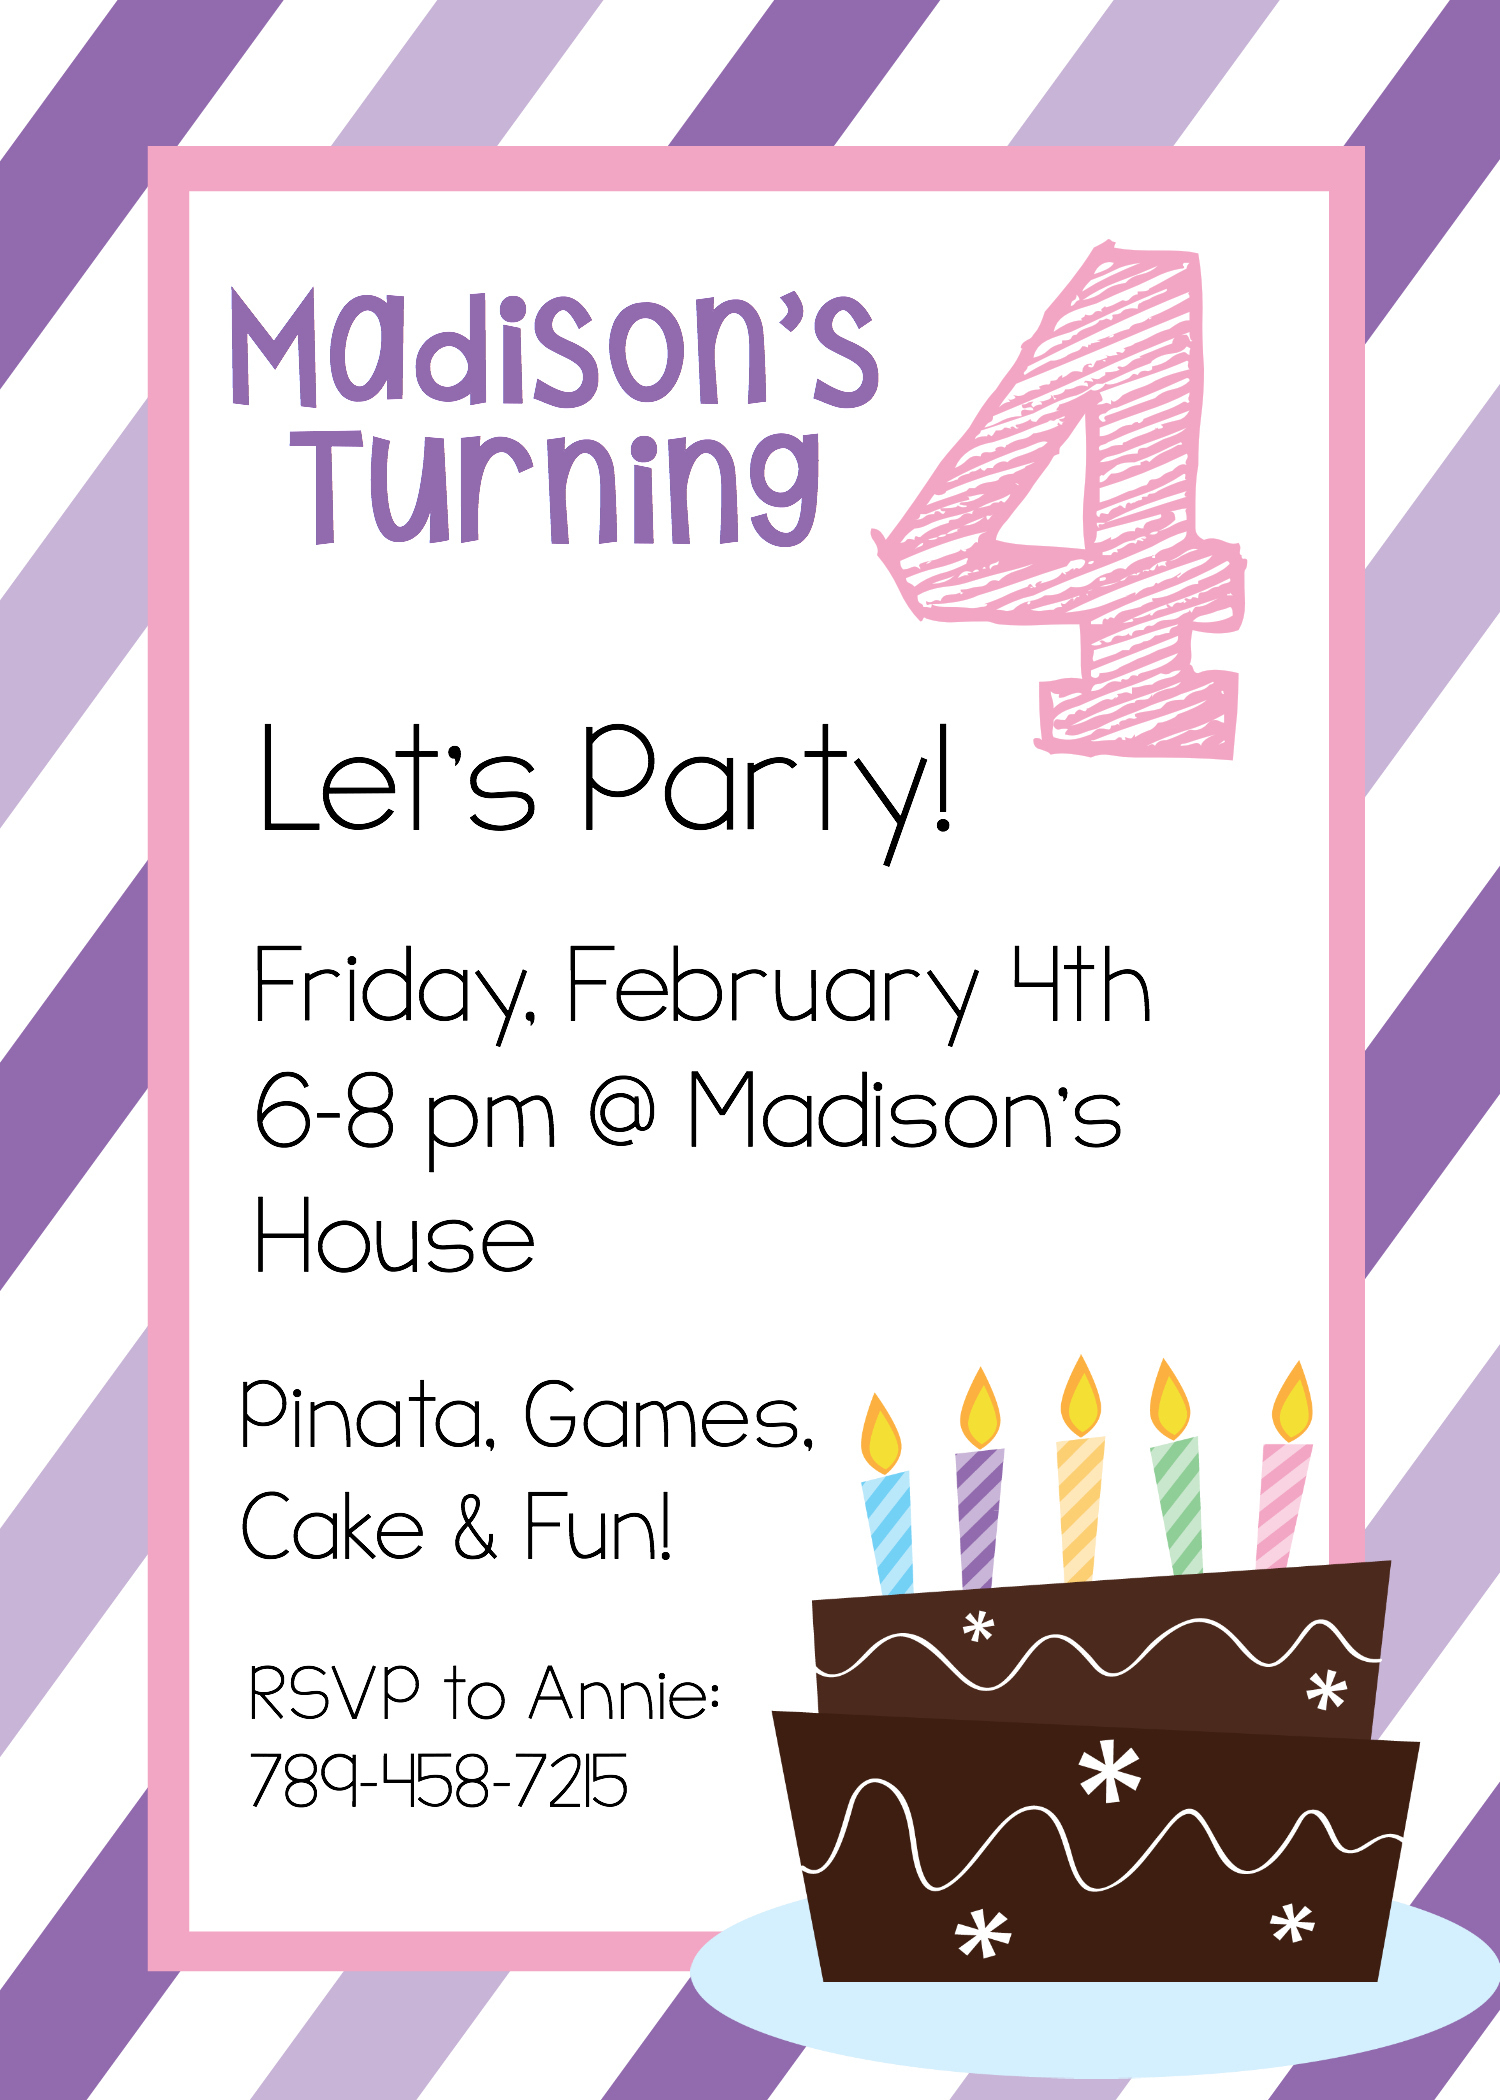 Free Printable Birthday Invitation Templates - Free Printable Birthday Invitation Cards Templates